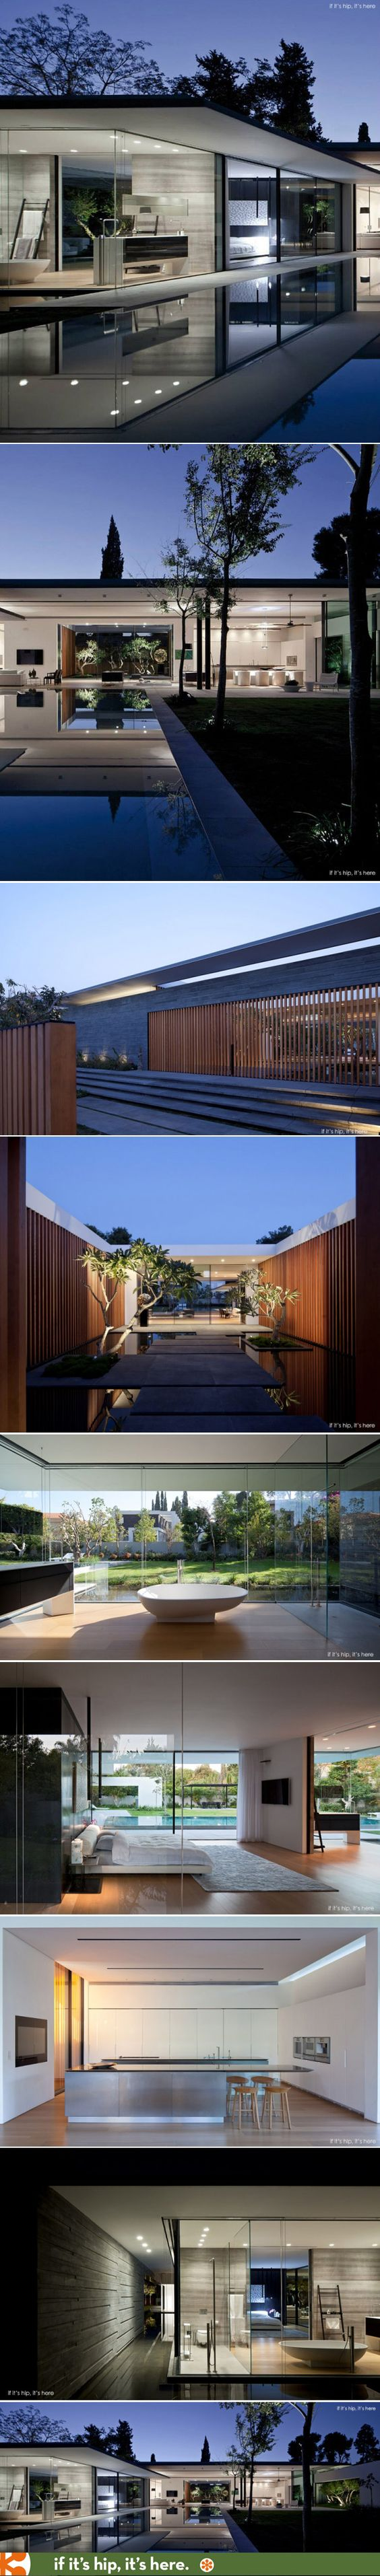 best small building images on pinterest